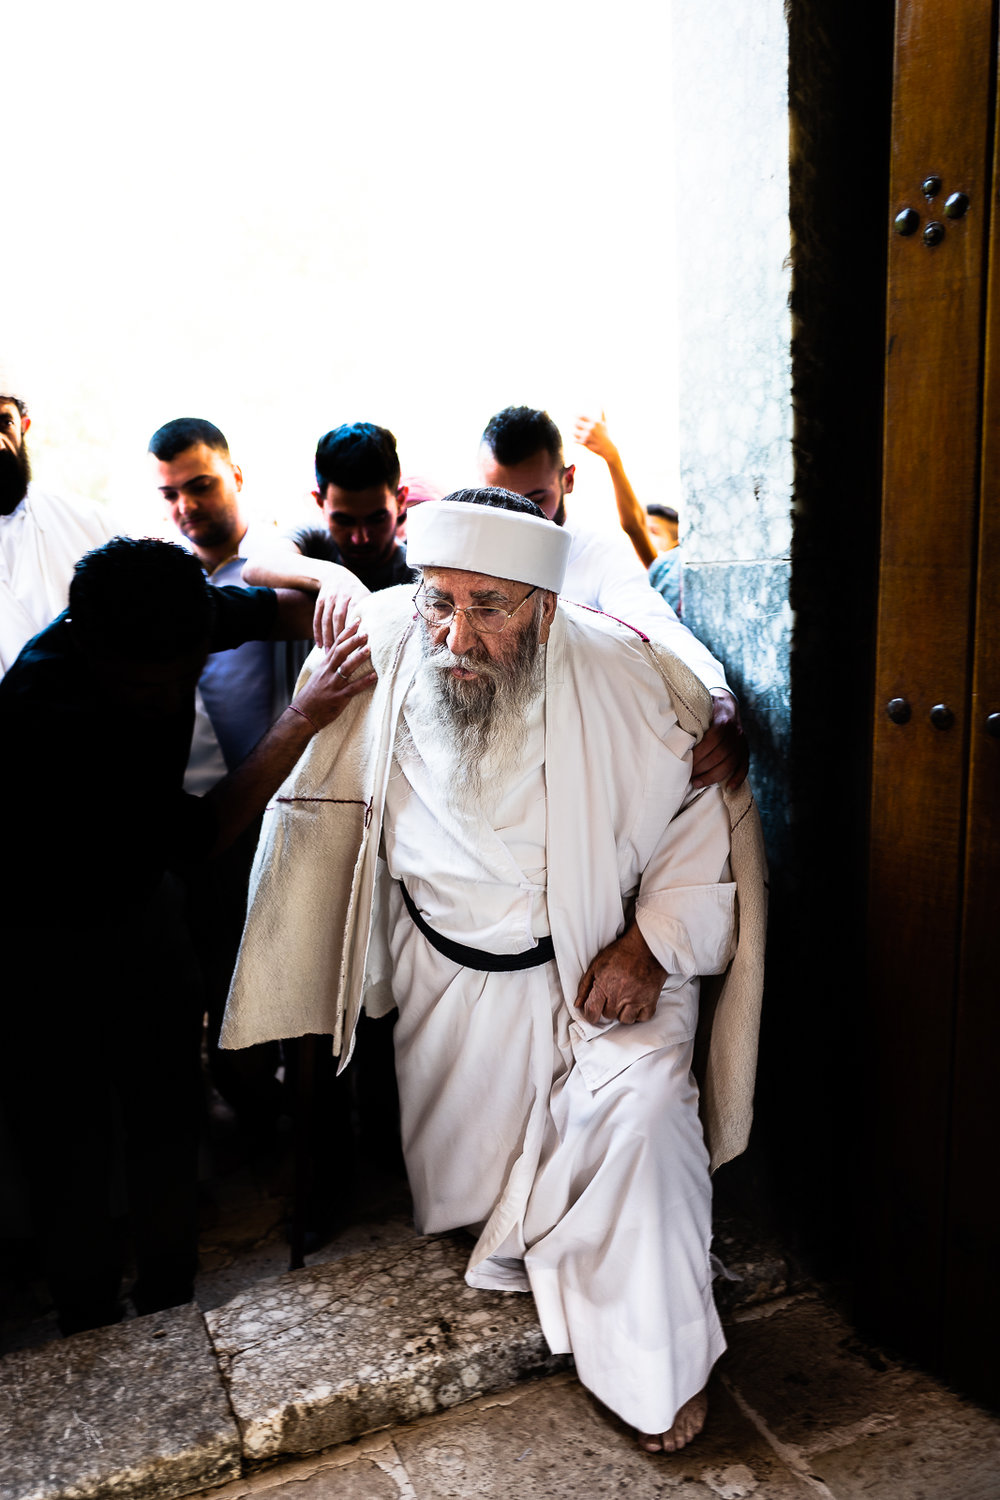 Baba Sheikh enter the Lalish temple whitout touch the door jamb because it's considerated sacre